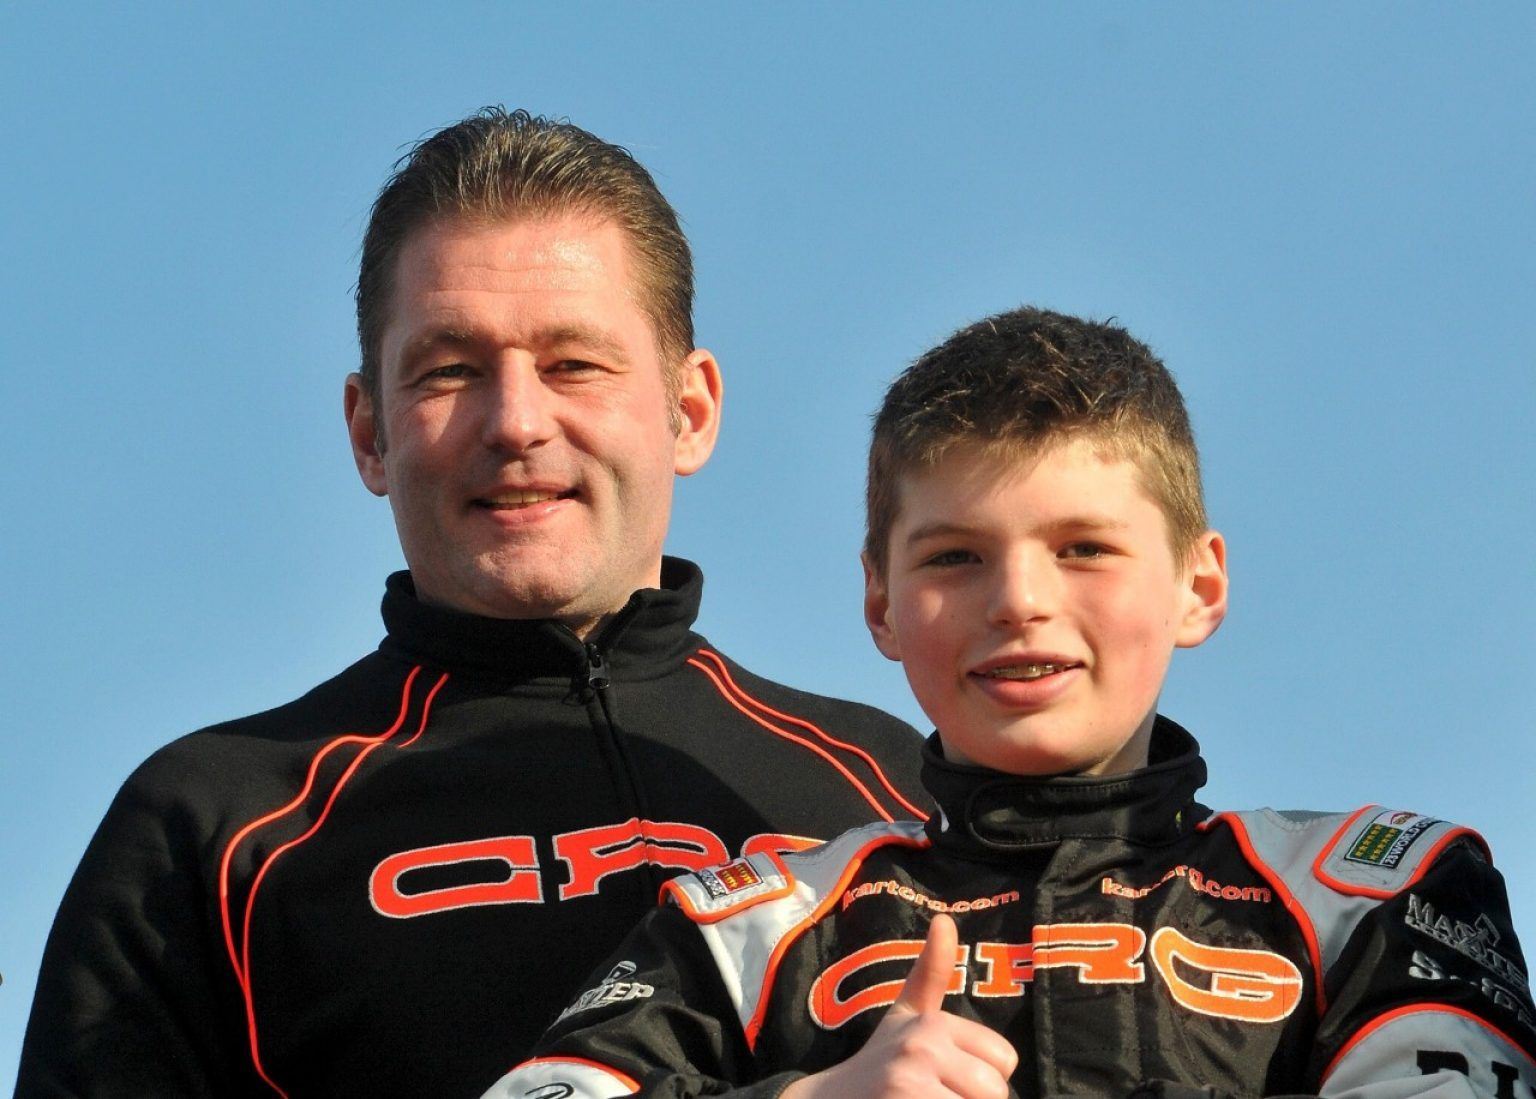 Max Verstappen NDL CRG right son of Jos Verstappen NDL left finished second in the 2010 Winter Cup. 15th Winter Cup South Garda Karting Lonato Italy 19 21 February 2010.